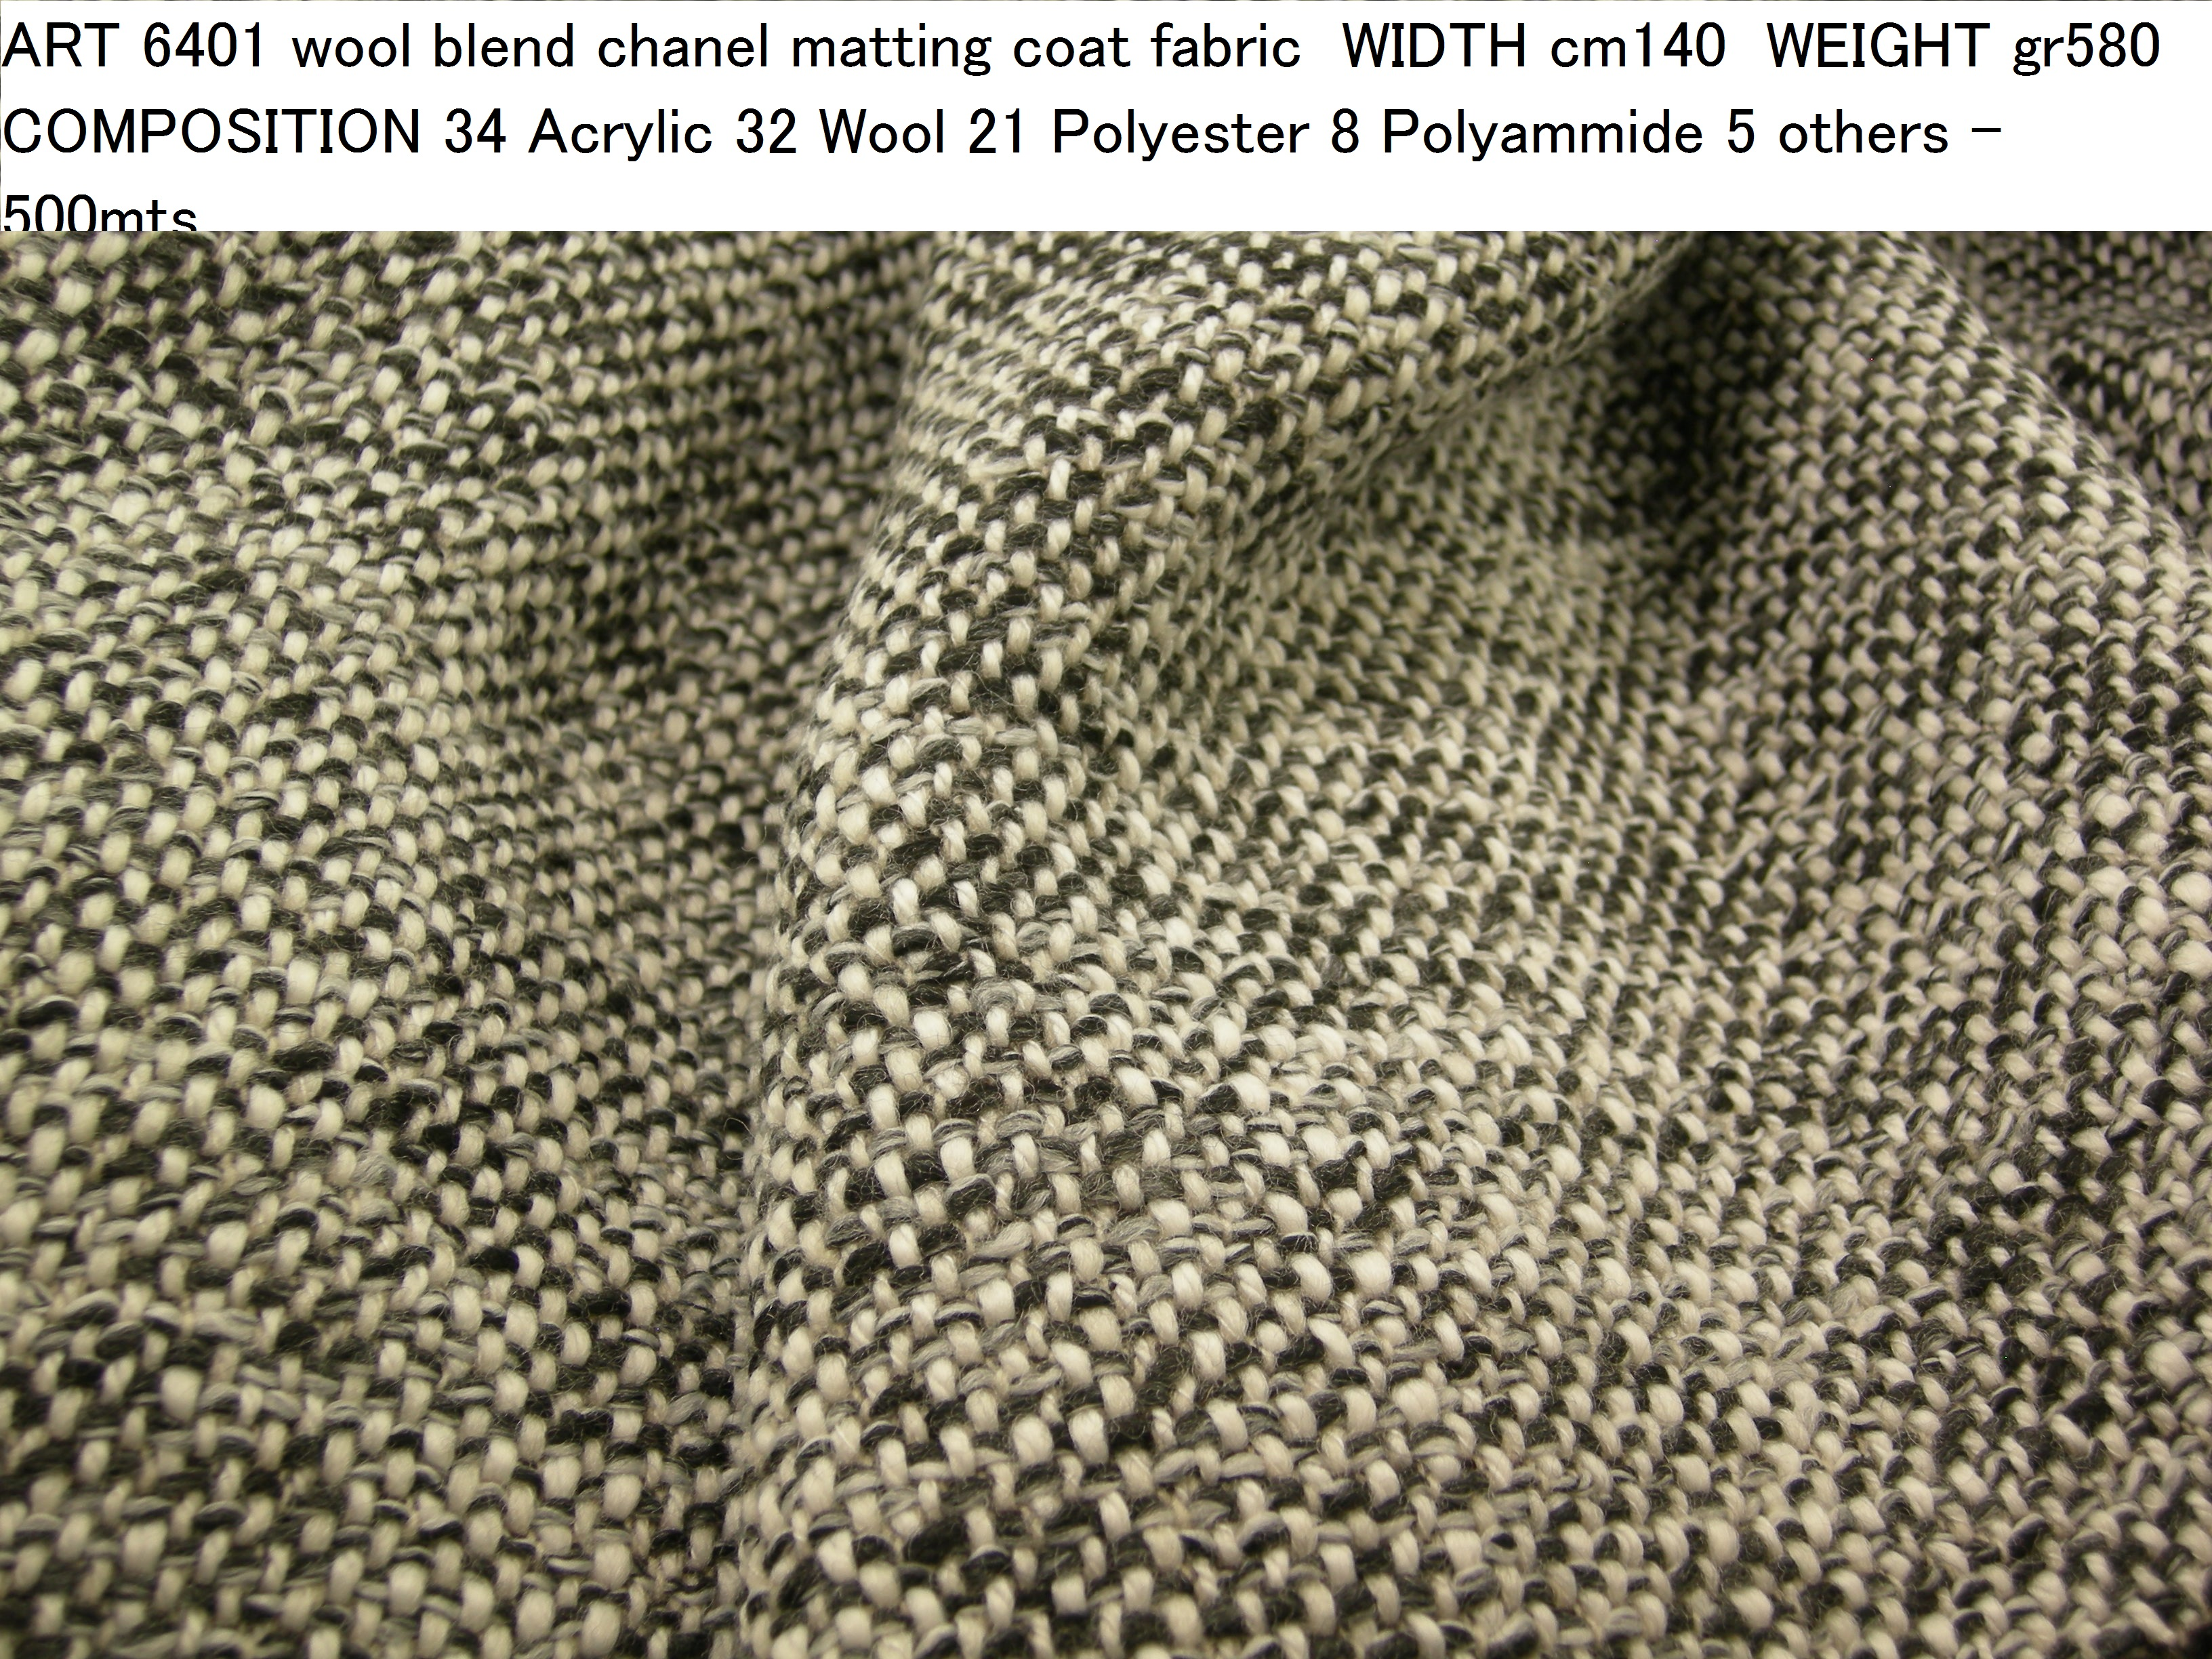 ART 6401 wool blend chanel matting coat fabric WIDTH cm140 WEIGHT gr580 COMPOSITION 34 Acrylic 32 Wool 21 Polyester 8 Polyammide 5 others - 500mts